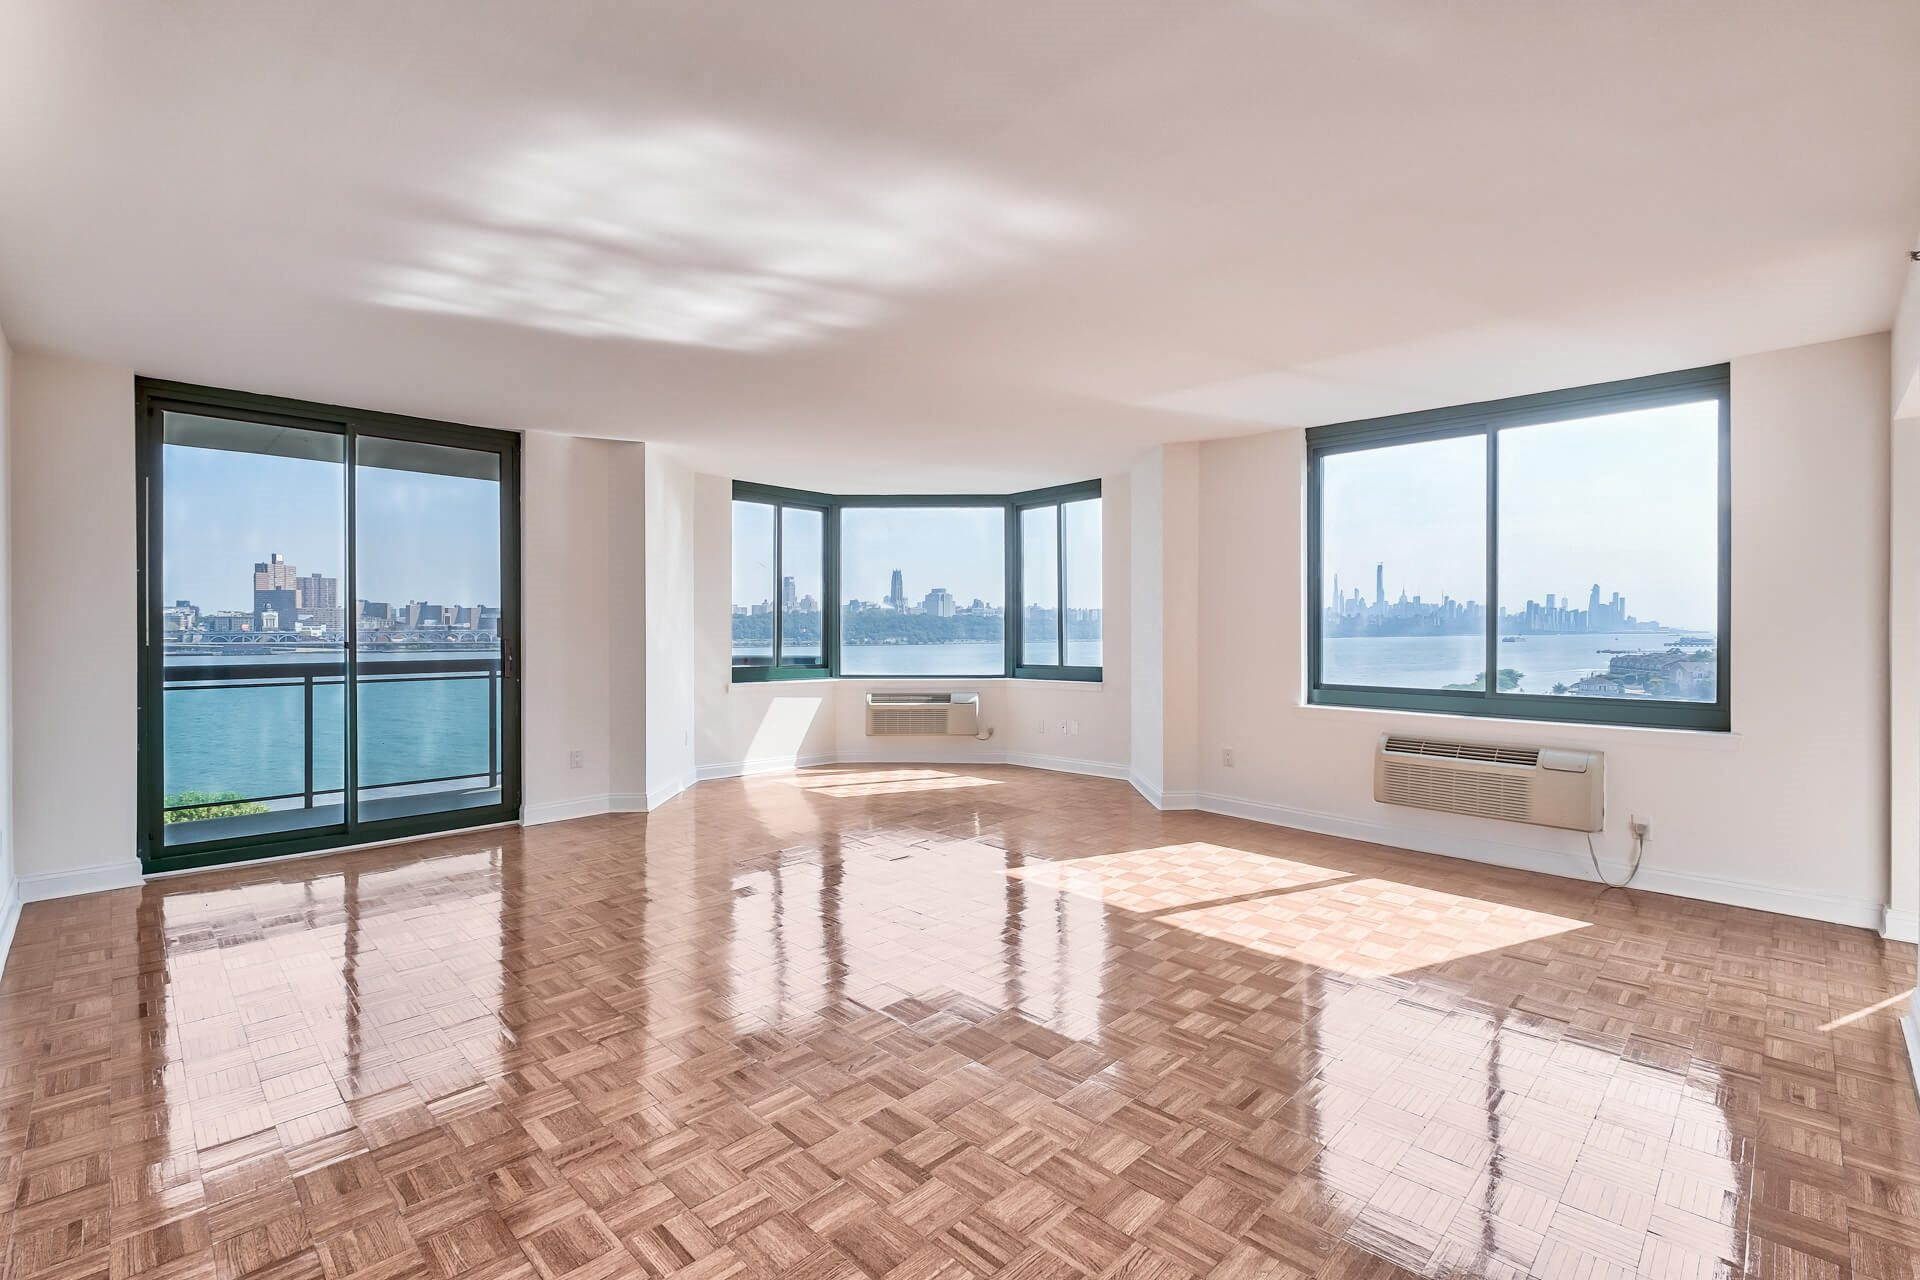 Posh Living Room View with Balcony at Windsor at Mariners, 100 Tower Dr., NJ